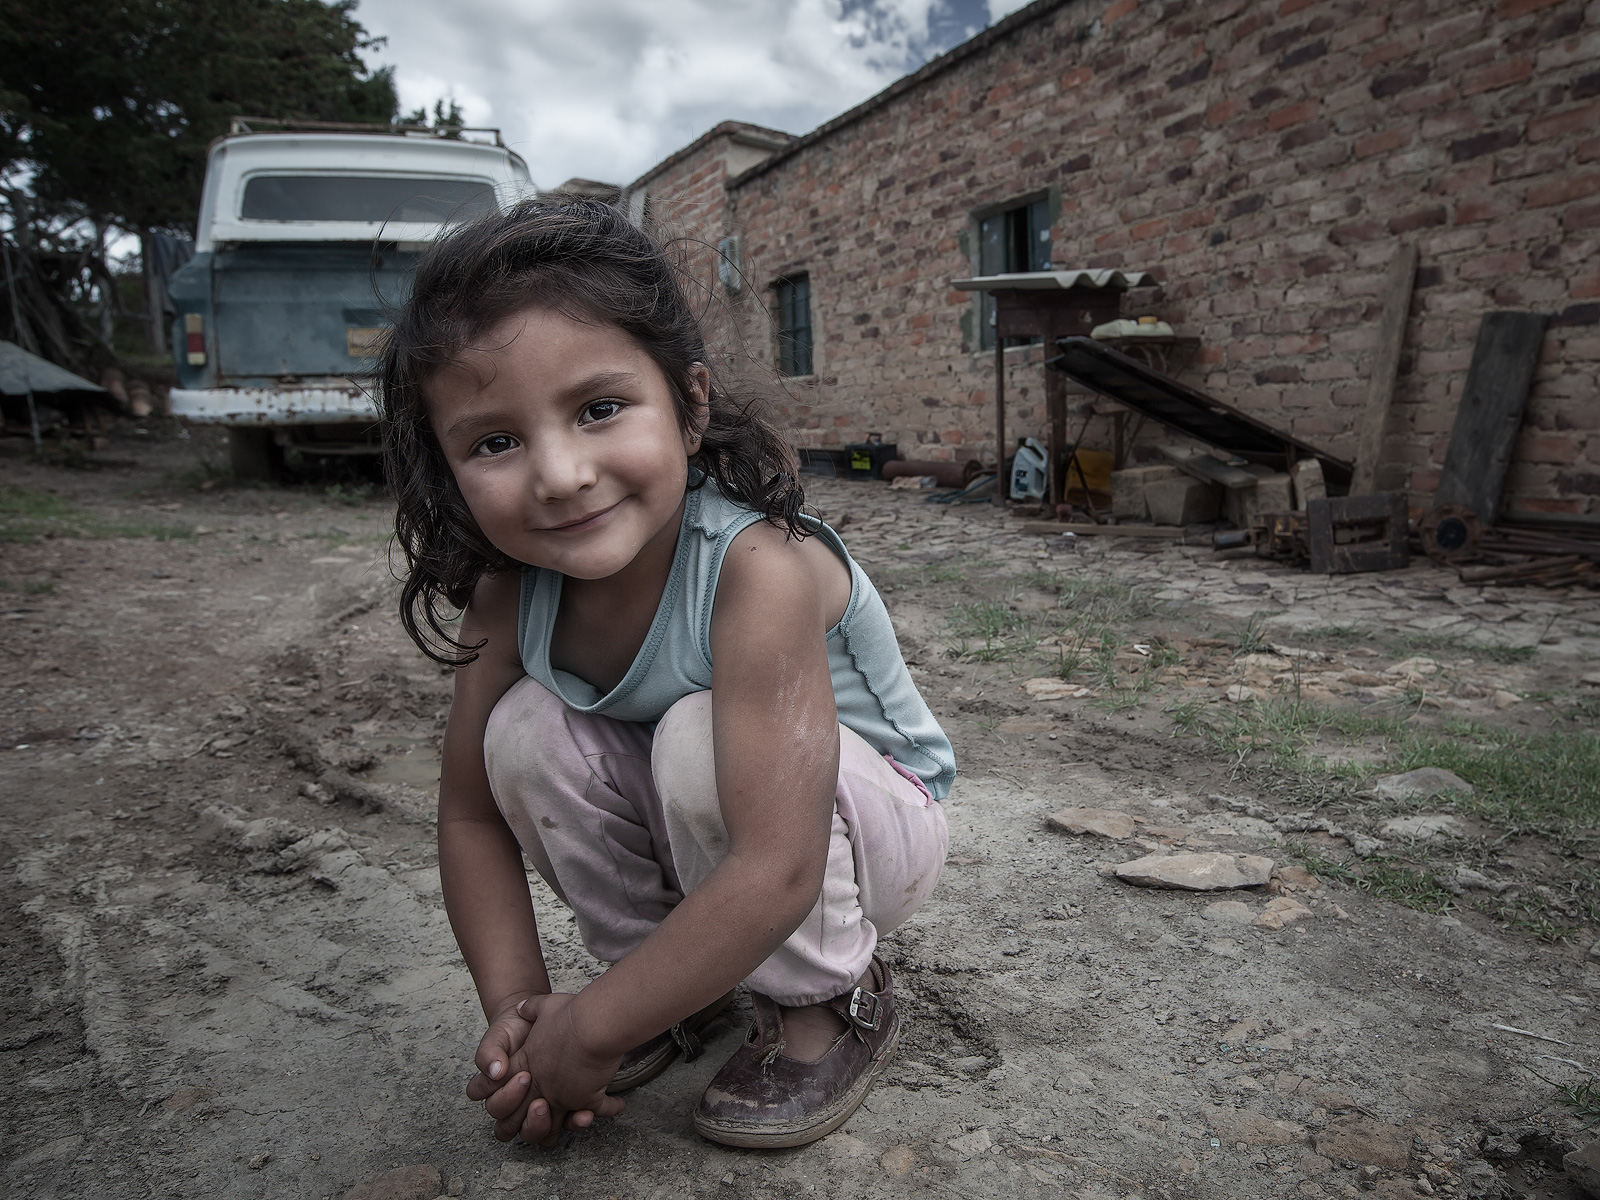 adorable,angelic,beautiful,boyaca,boyacá,colombia,colombian,colombiana,environmental portait,female,girl,happy,kneeling,portrait,south america,villa de leyva,boyacá, photo